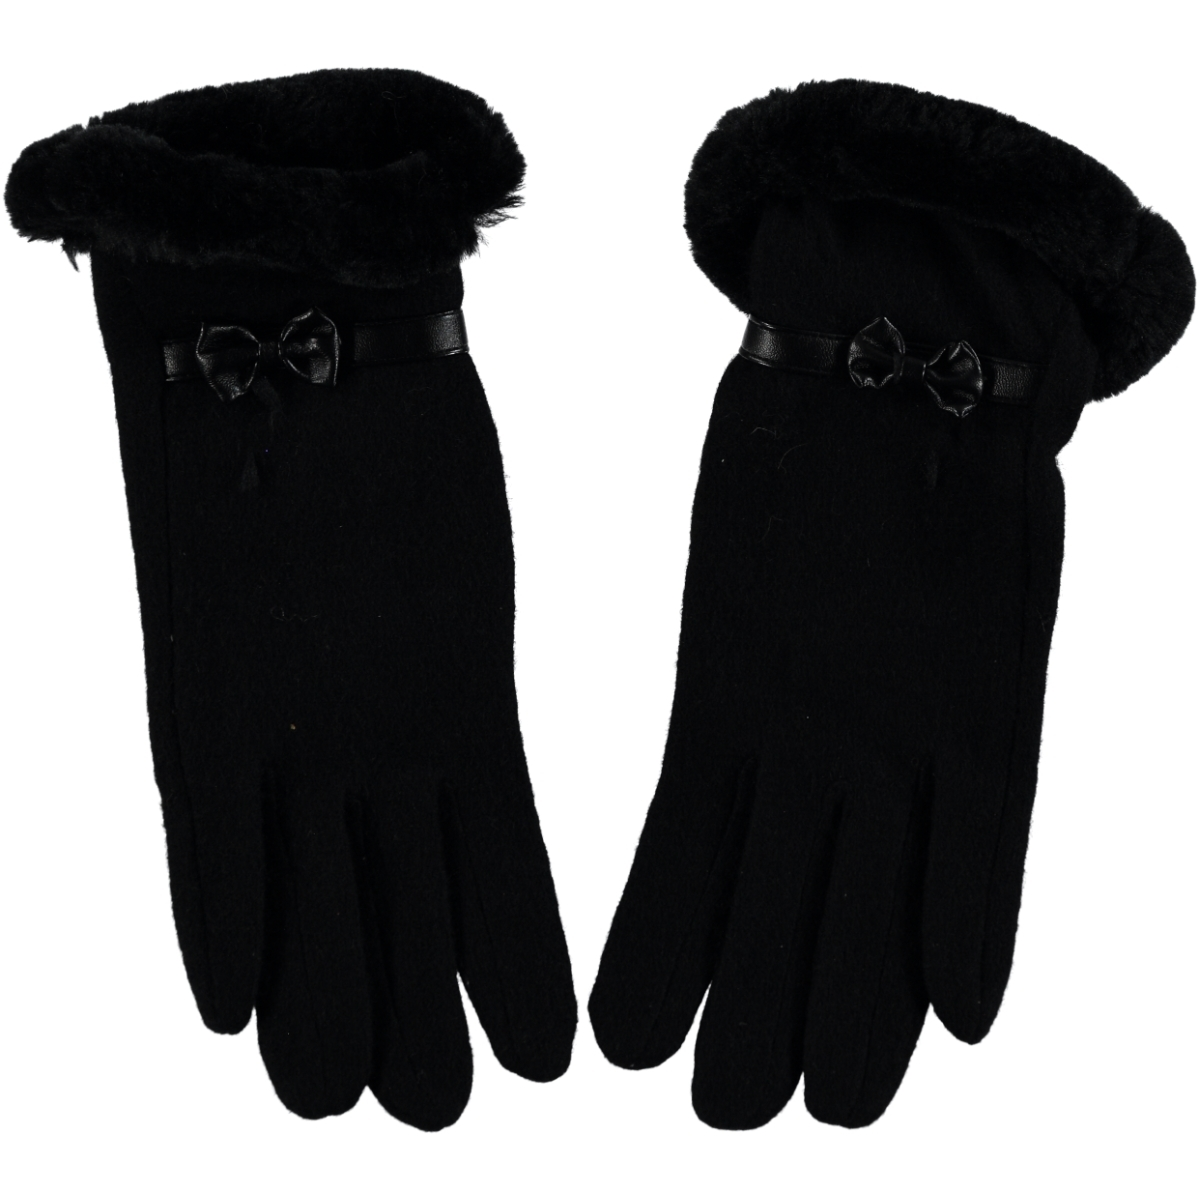 Suyutti Black Wool Gloves Girl Kid Age 12-16